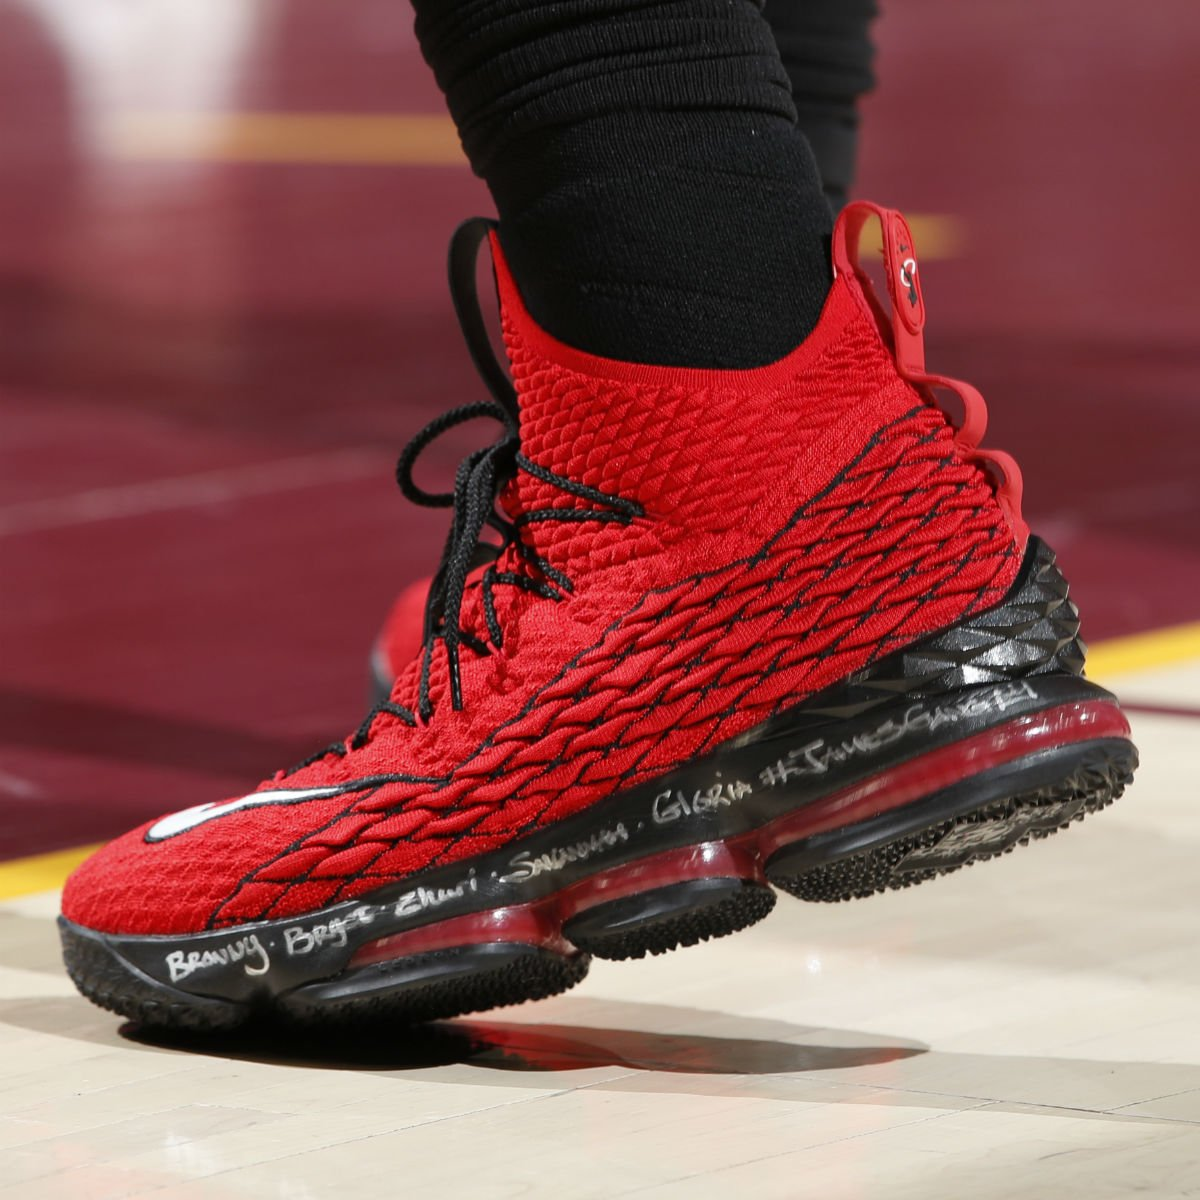 451706bf55a  SoleWatch   KingJames wearing the